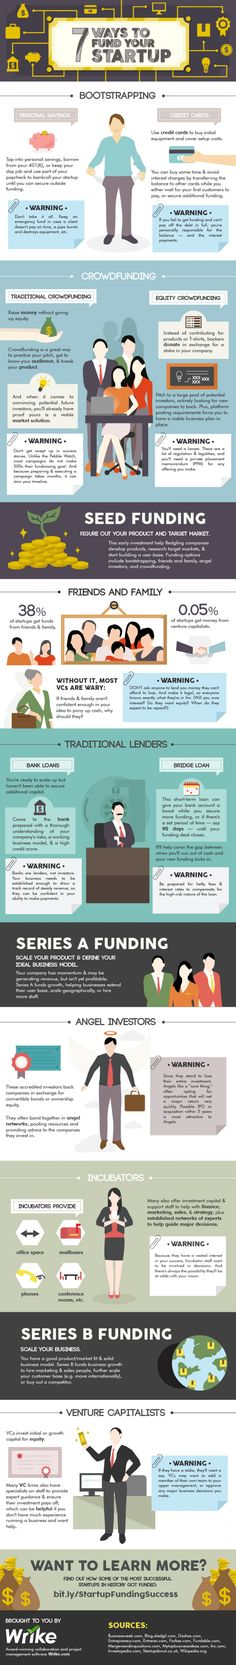 7 Ways To Fund Your Startup - #infographic